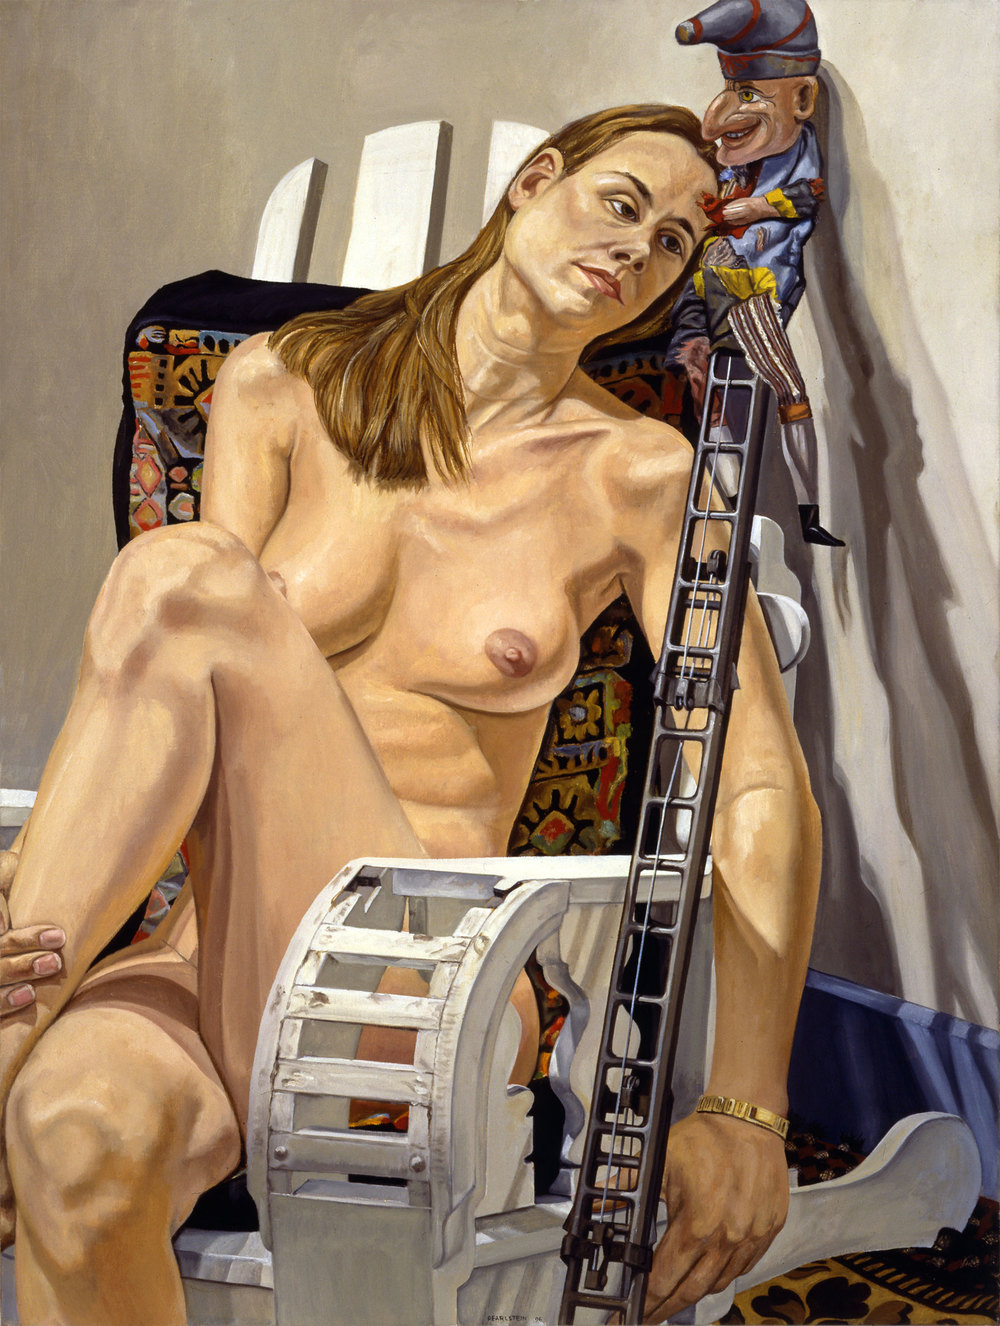 PUNCH ON A LADDER #2 , 1996  Oil on canvas   48 x 36 inches